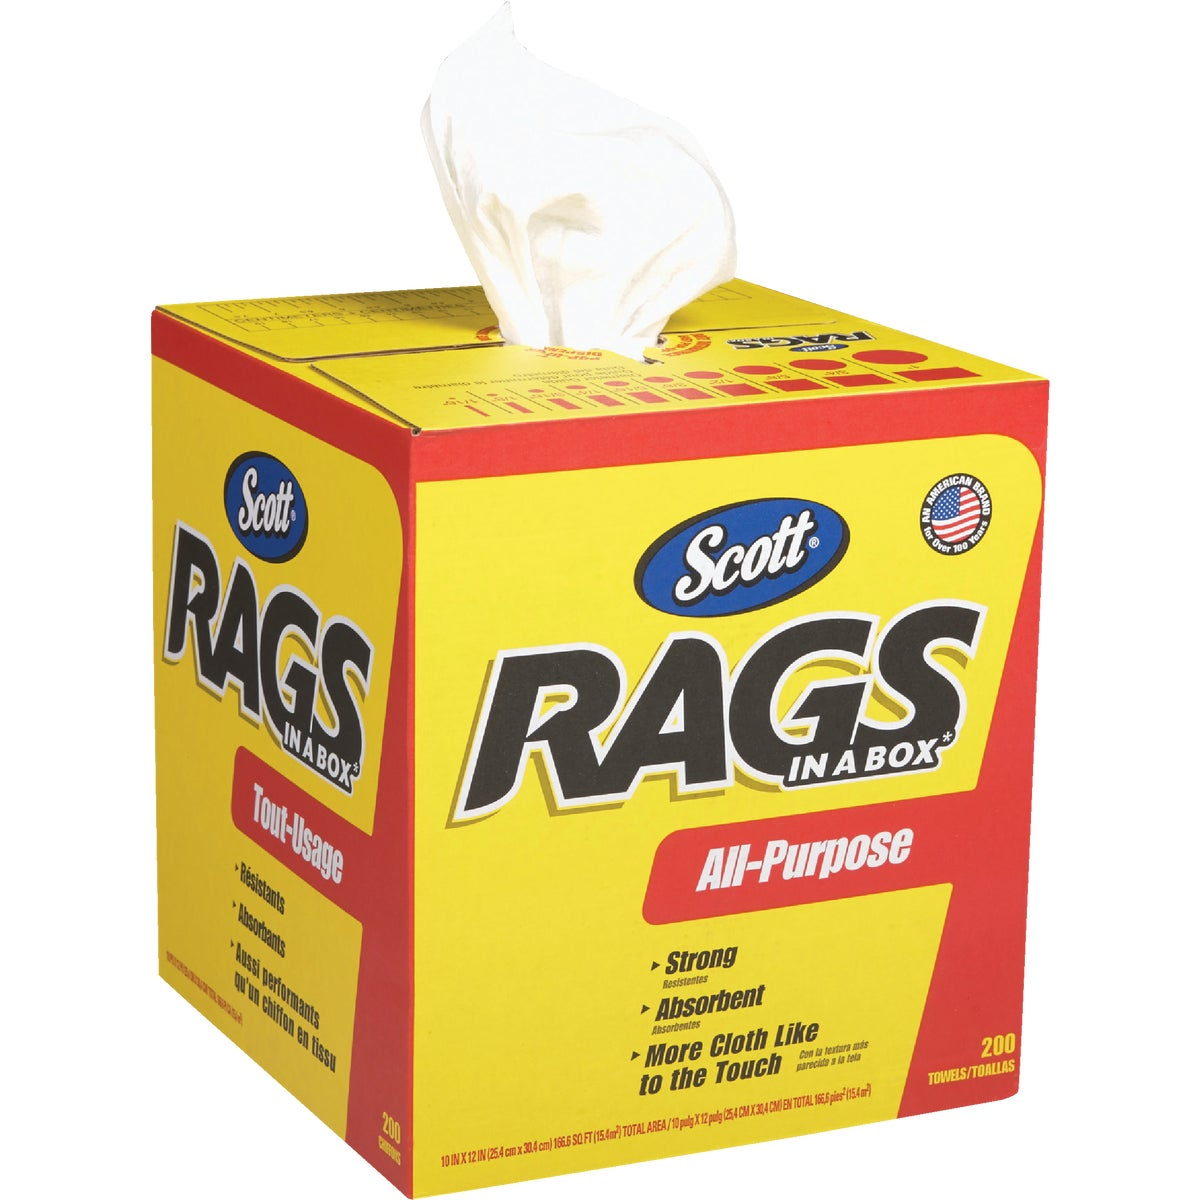 200CT BOX RAGS - 75260 by Kimberly Clark Scott